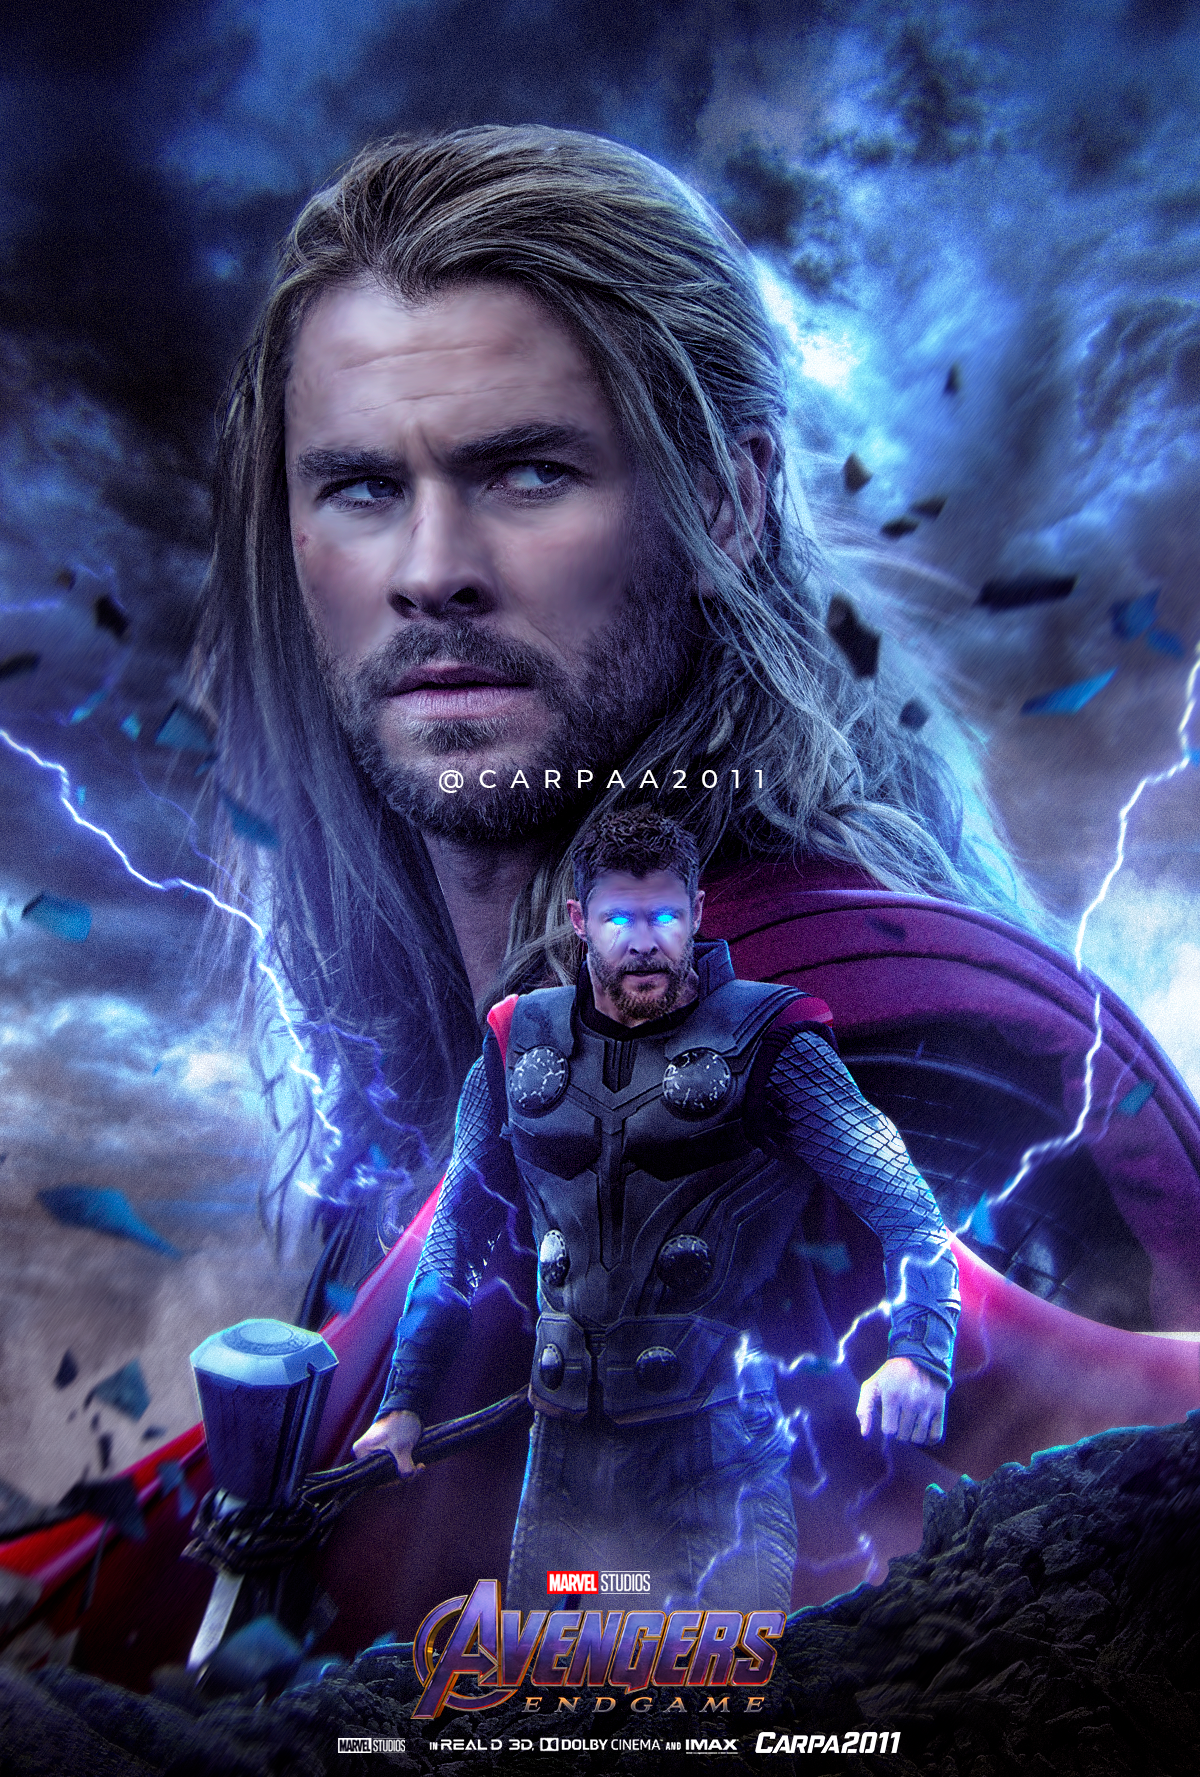 Poster Fanart Thor In Endgame By Carpaa2011 Marvel Game Of